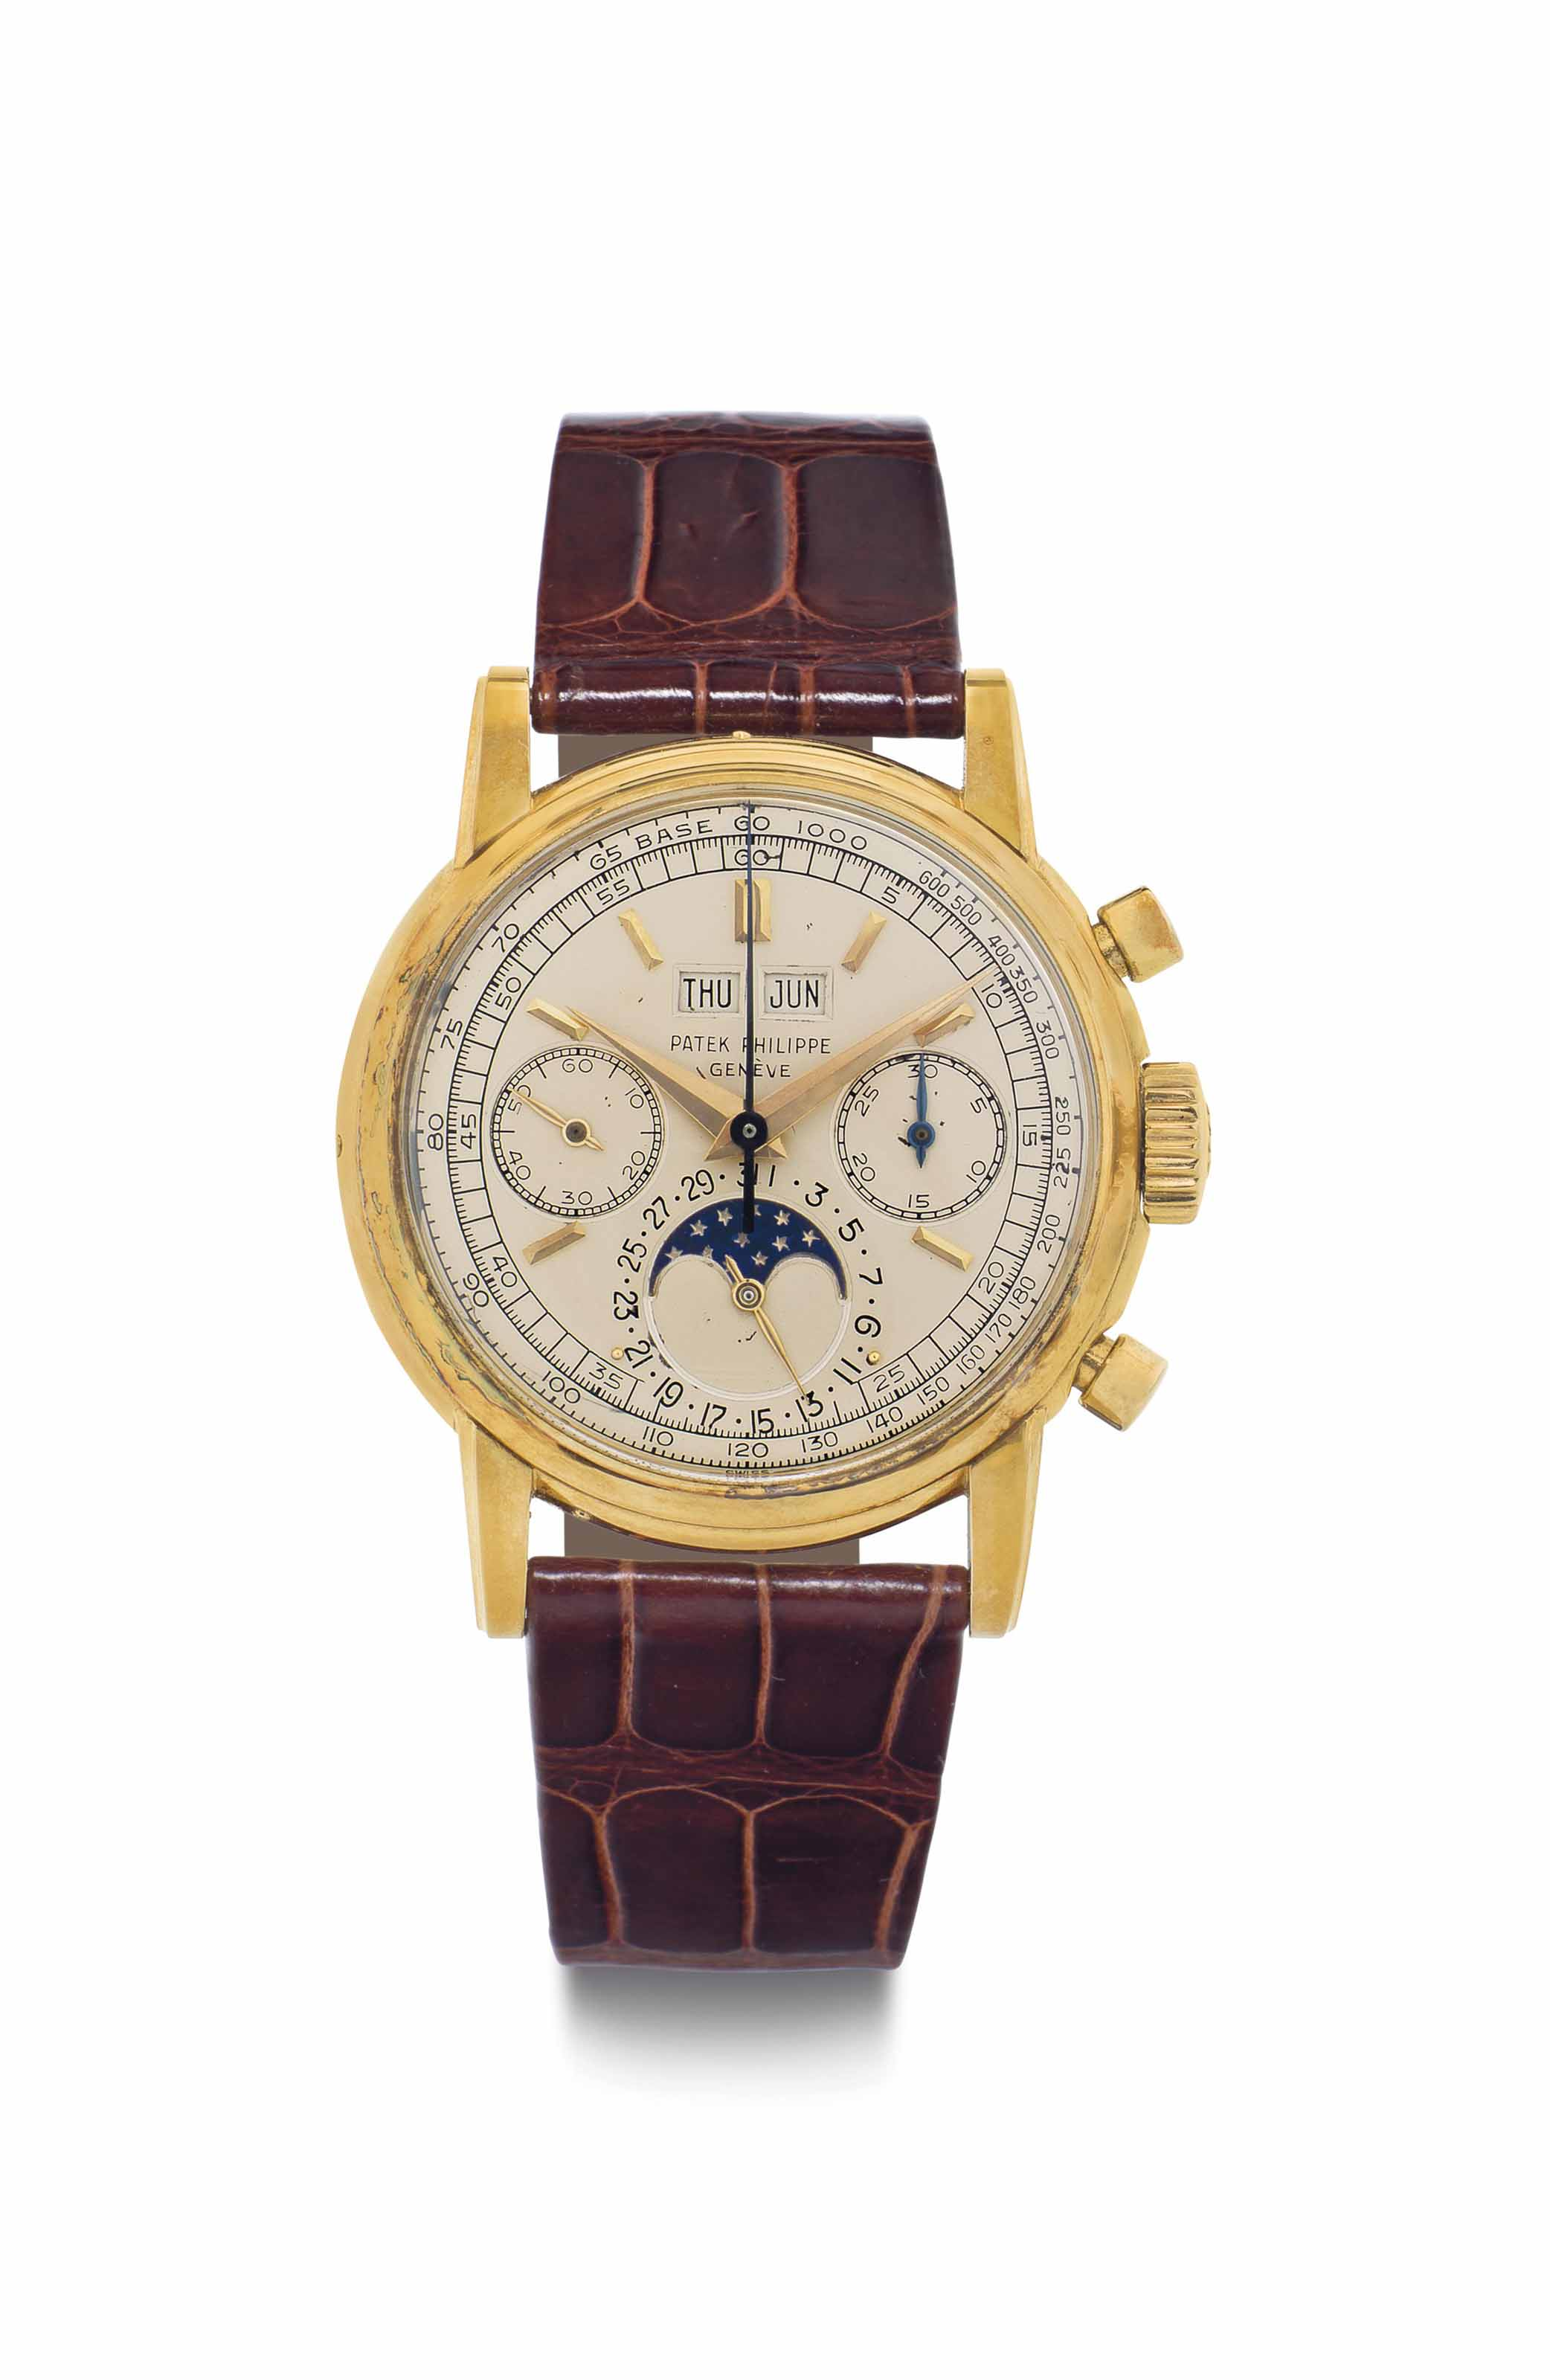 Patek Philippe. A Fine and Very Rare 18k Gold Perpetual Calendar Chronograph Wristwatch with Moon Phases and Tachometer Scale